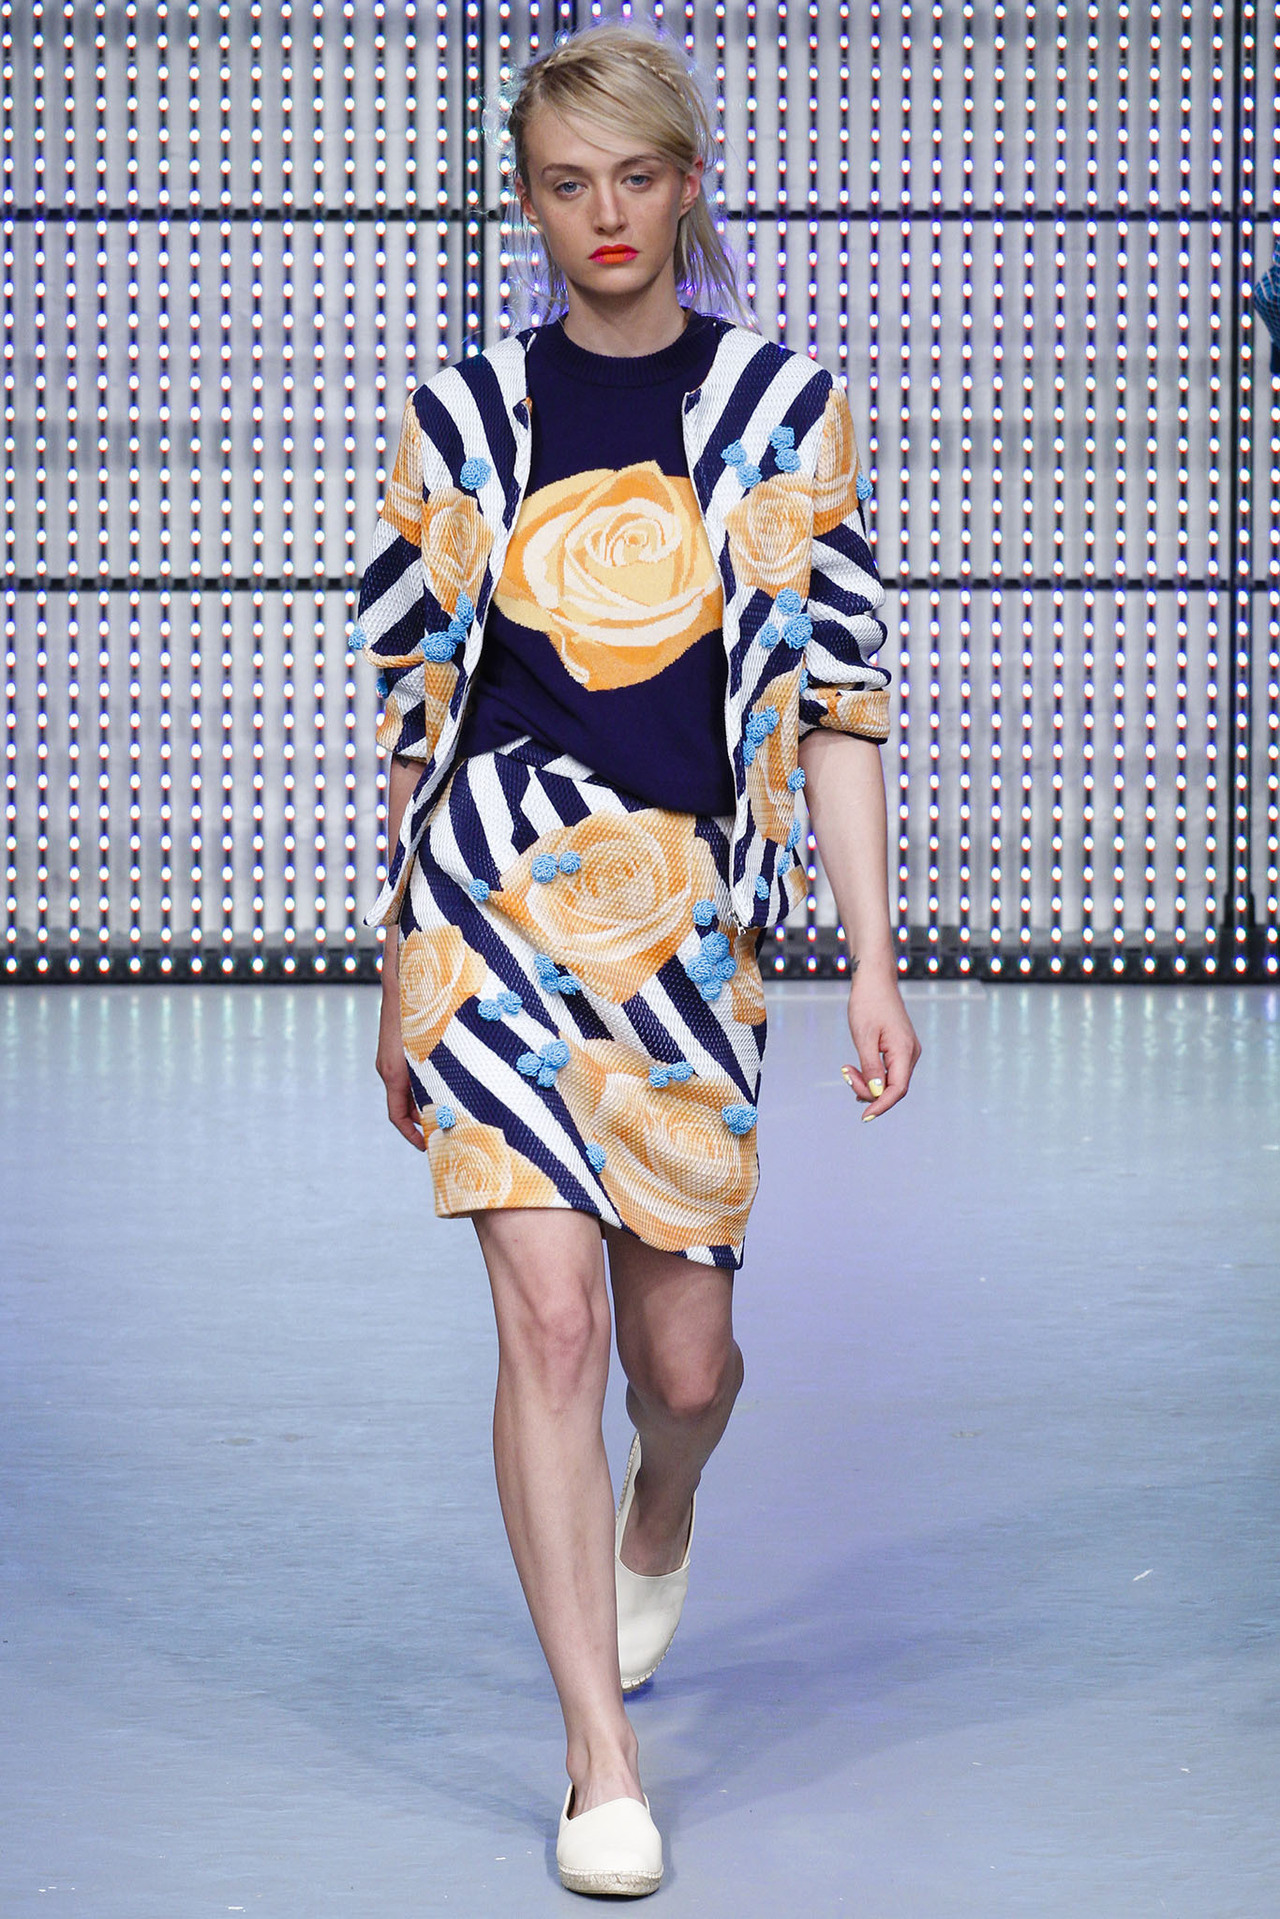 Holly Fulton Primavera/Verano 2013 Semana de la Moda de Londres ….. Holly Fulton Spring/Summer 2013 London Fashion Week